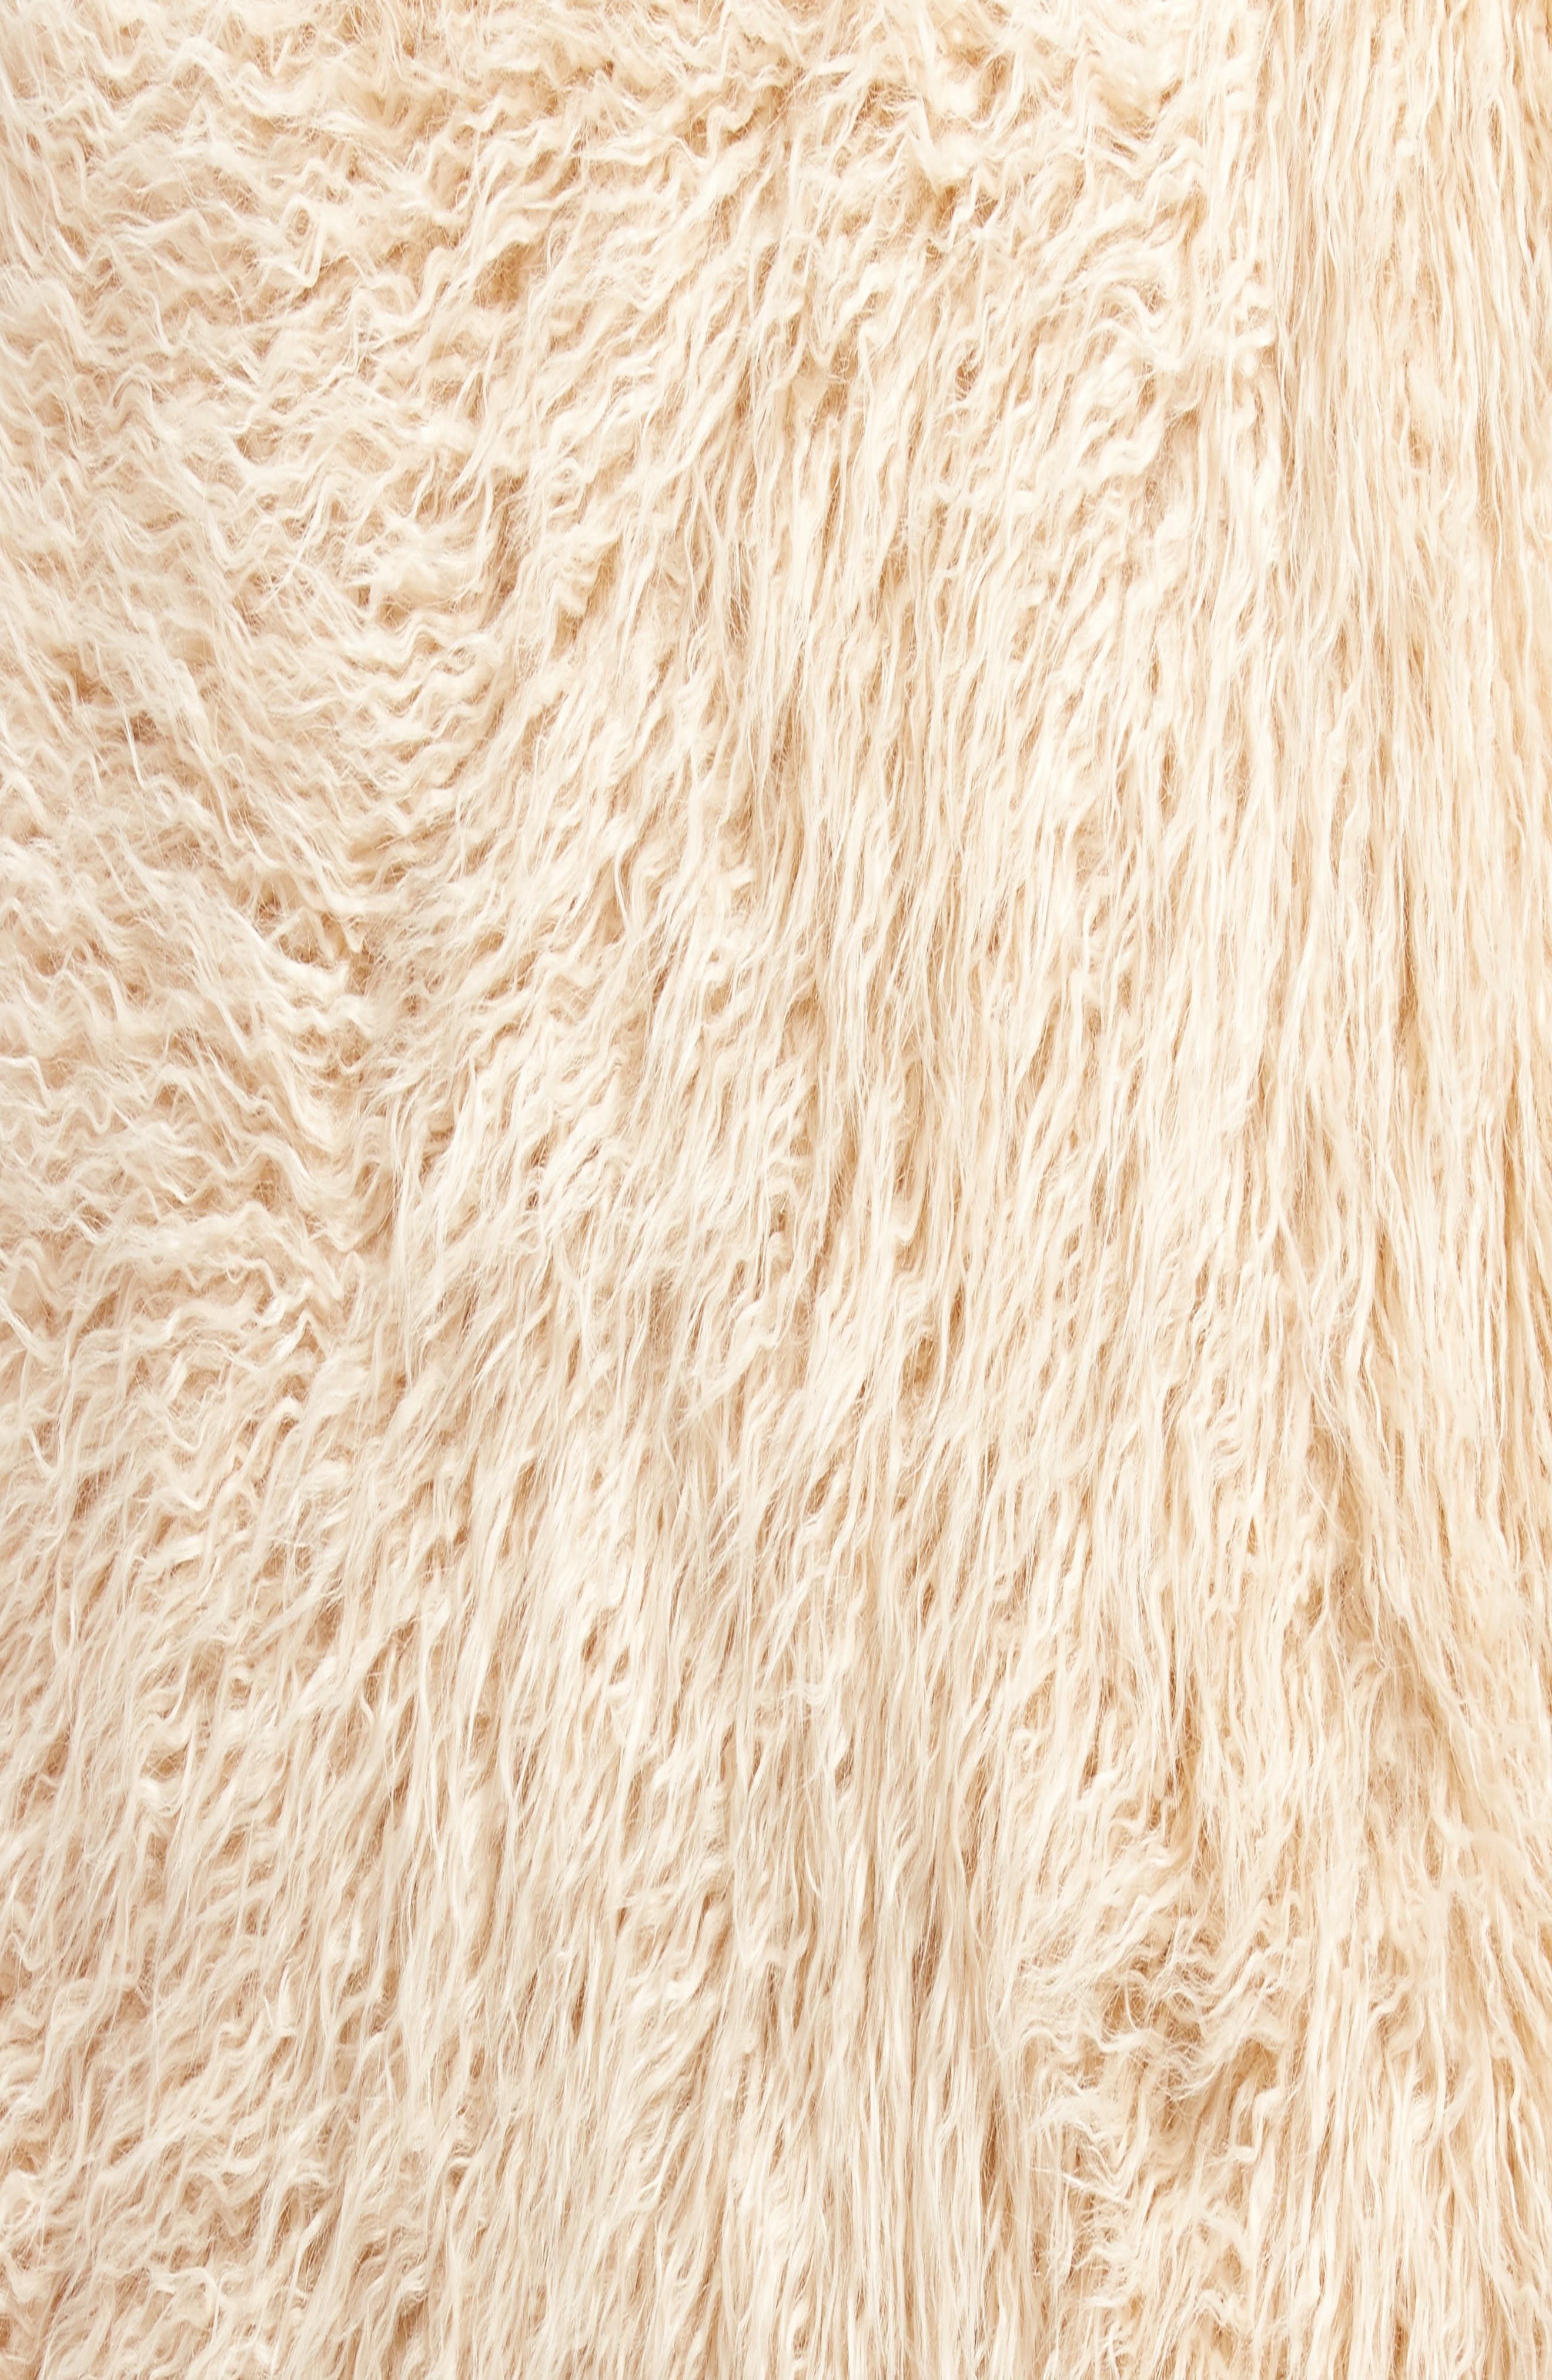 Curly Faux Fur Pillow,                             Alternate thumbnail 3, color,                             Beige Beach